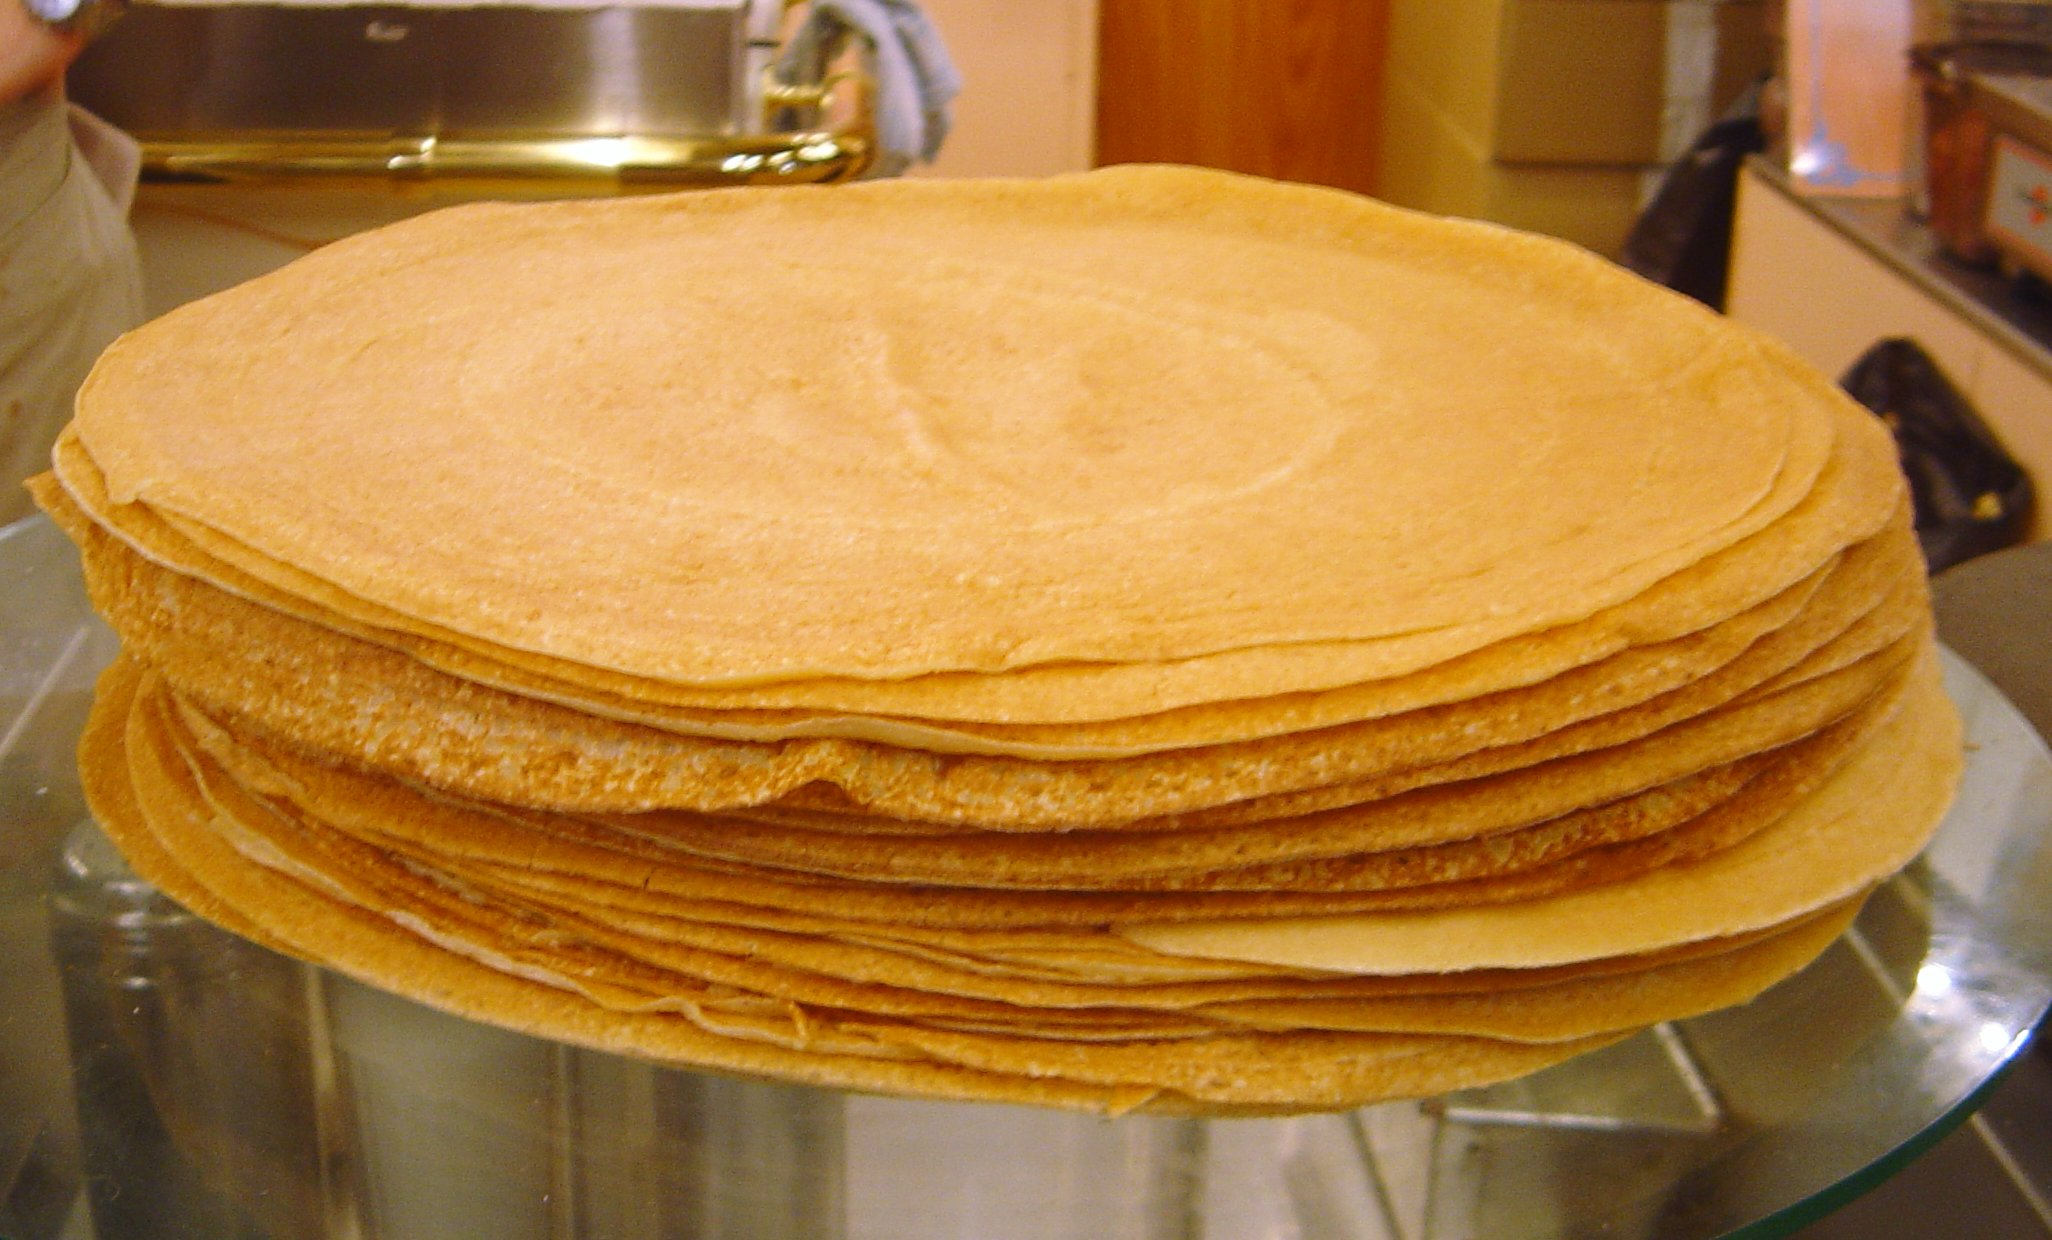 File:Crepes dsc07085.jpg - Wikipedia, the free encyclopedia